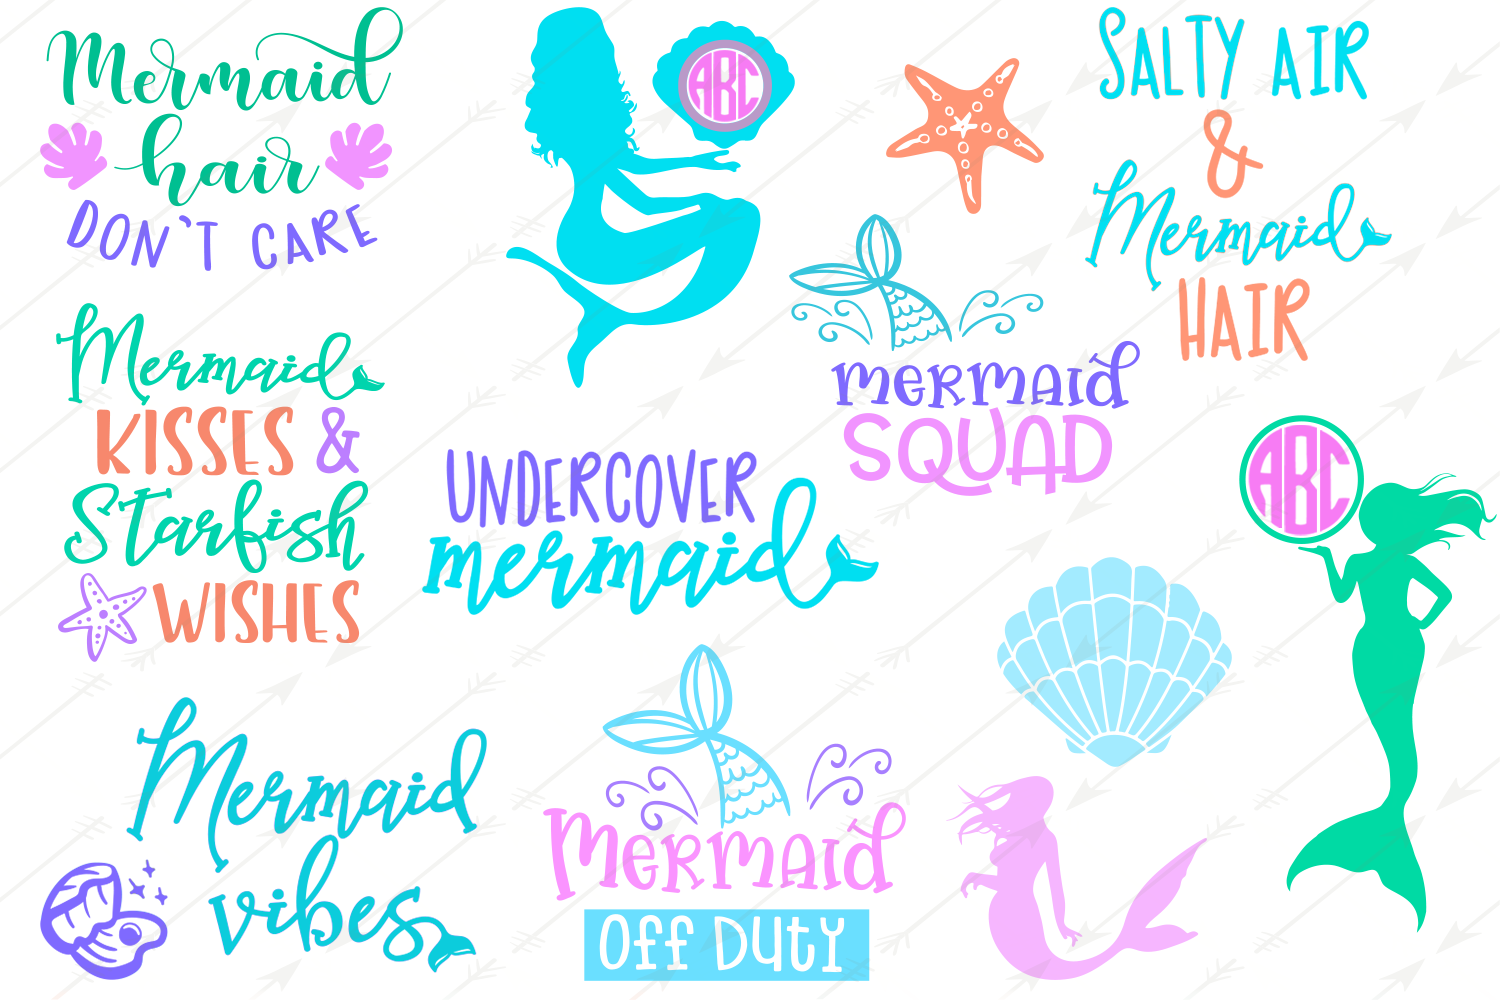 Free SVG & PNG Download Gallery by Mermaid crafts